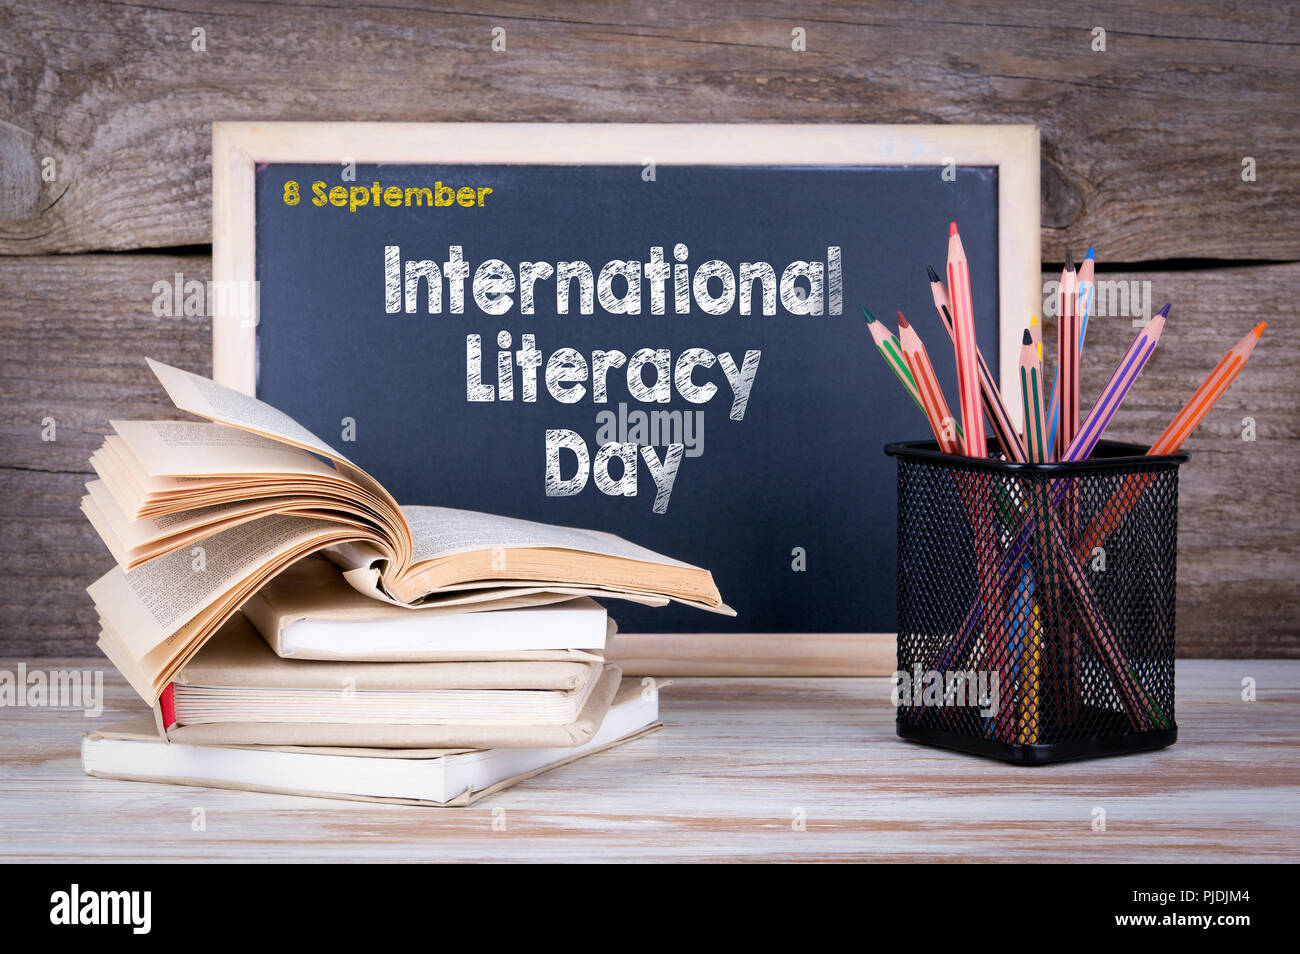 International Literacy Day 8 September - Stock Image